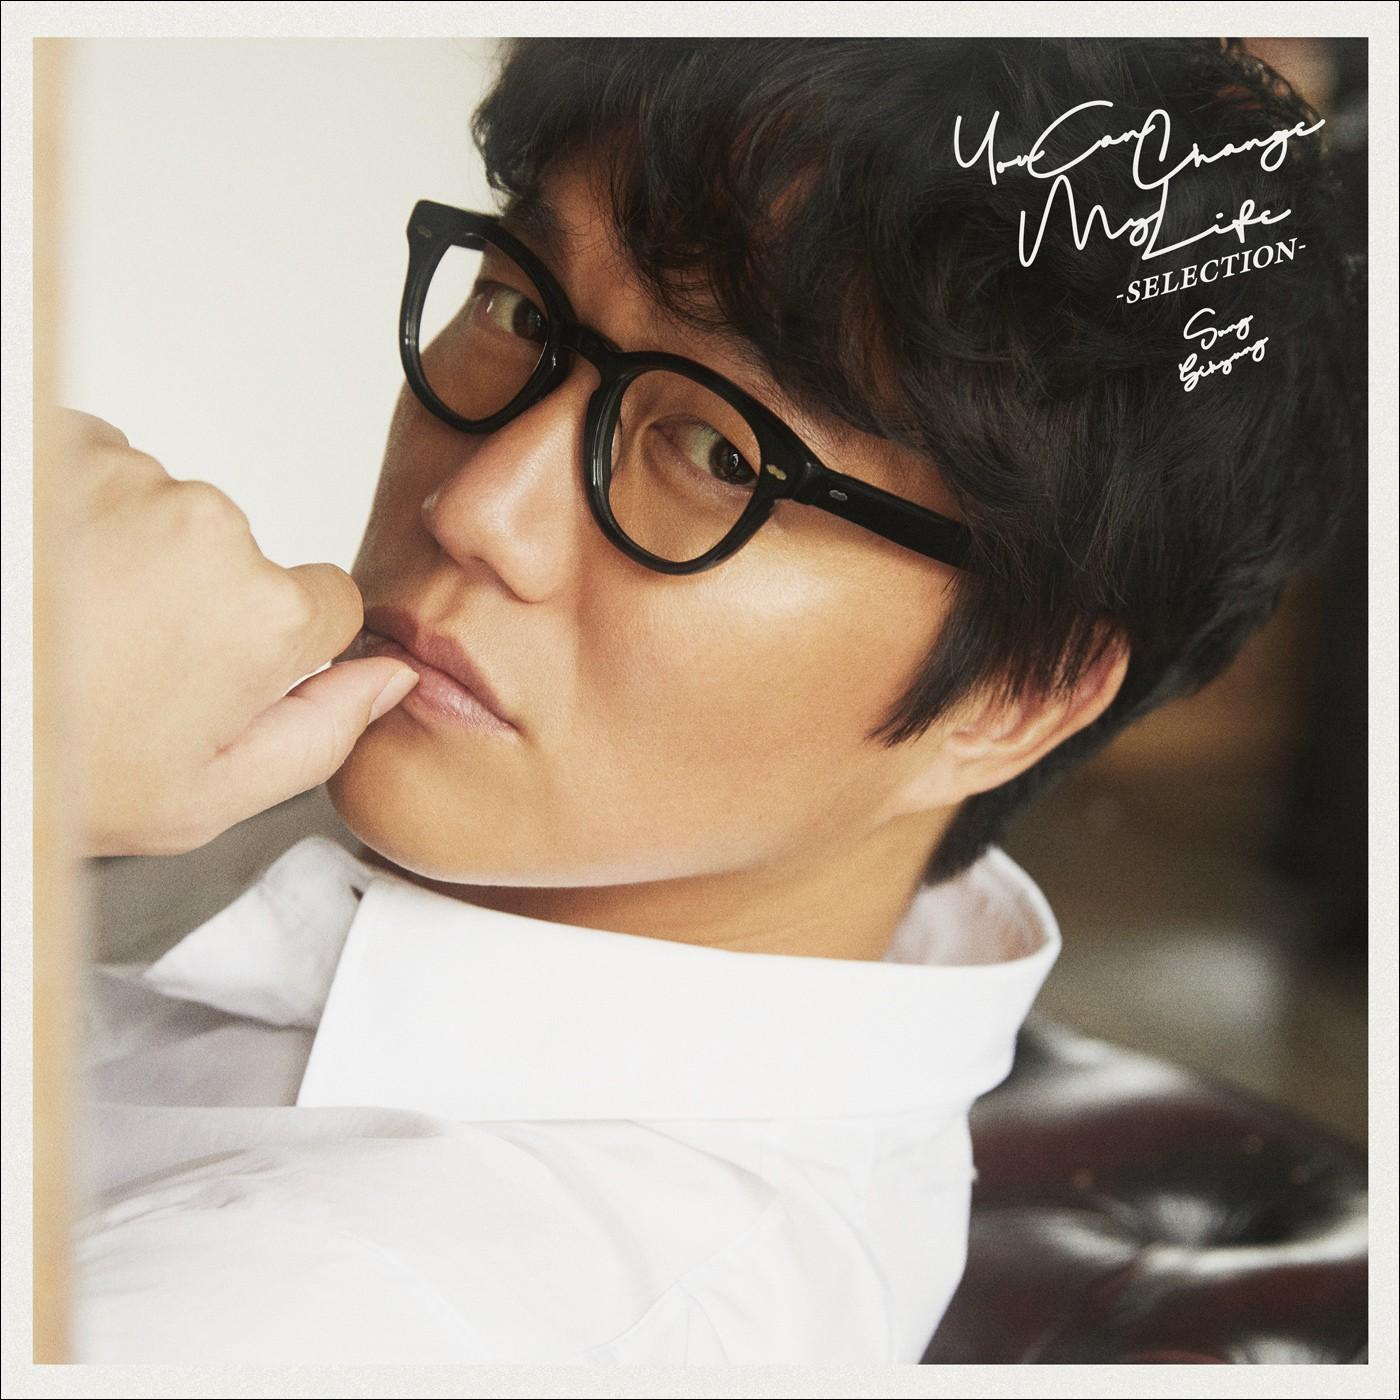 Sung Si Kyung (성시경) – You Can Change My Life ~SELECTION~ [24bit Lossless + MP3 320 / WEB] [2021.02.03]